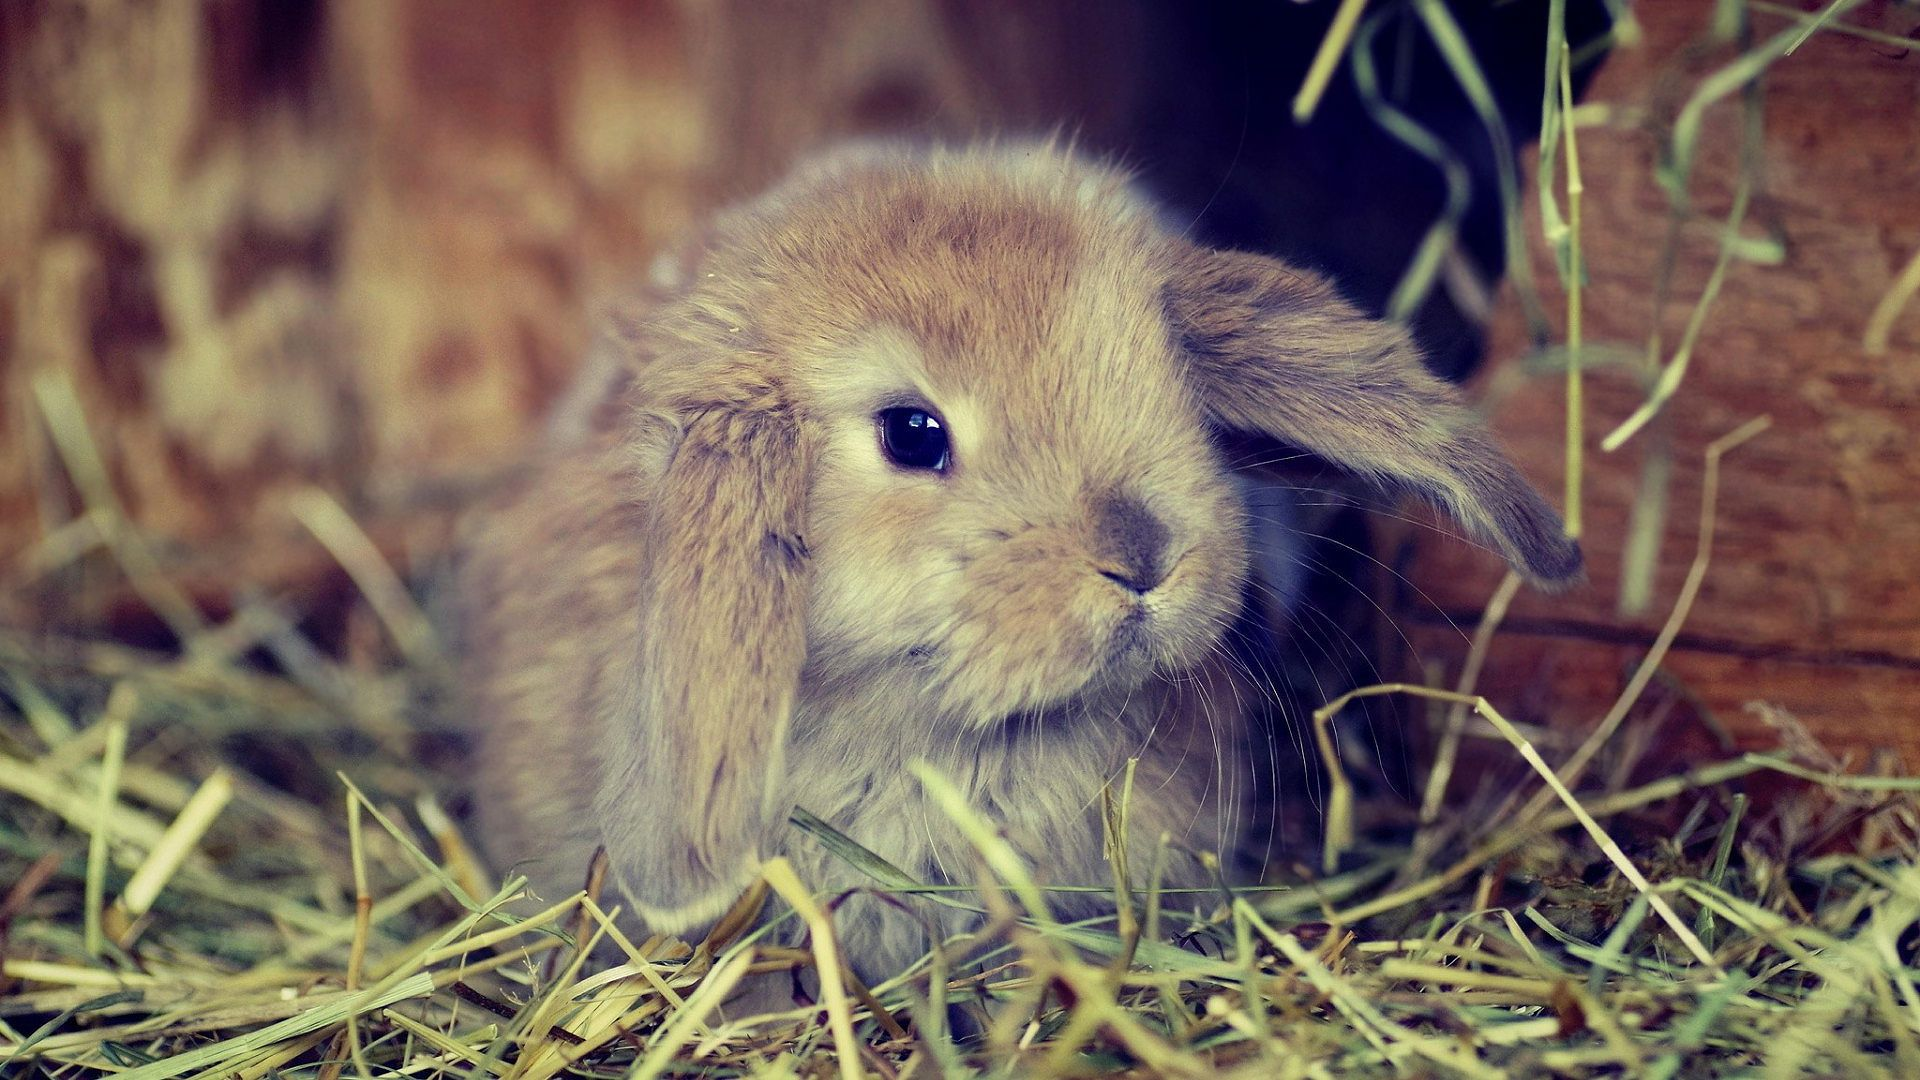 Free Download 1920x1080 Cute Fluffy Bunny Wallpaper Urban Chicy